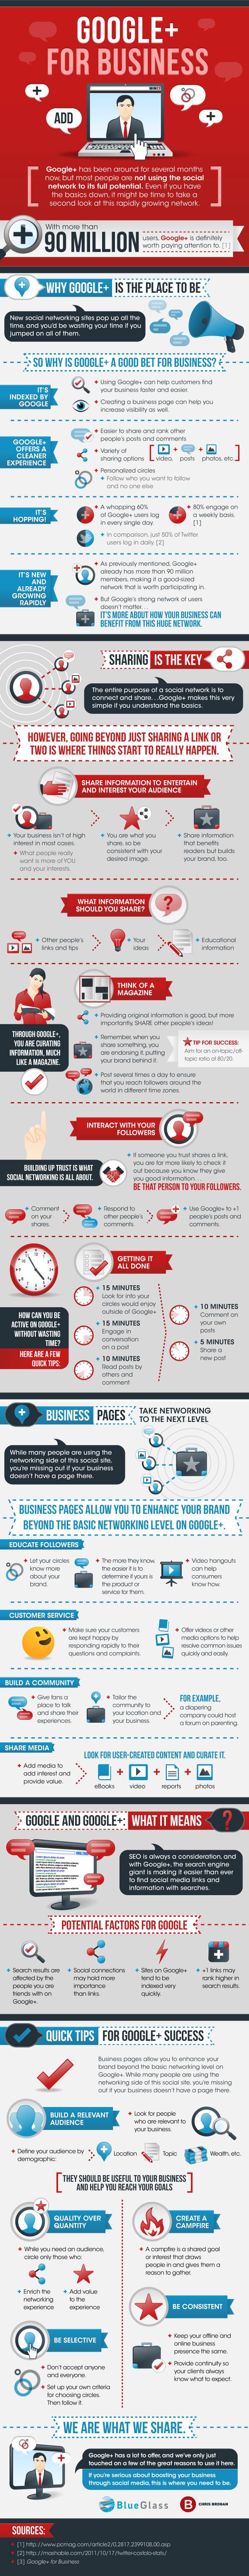 Google-Plus-For-Business-infographic